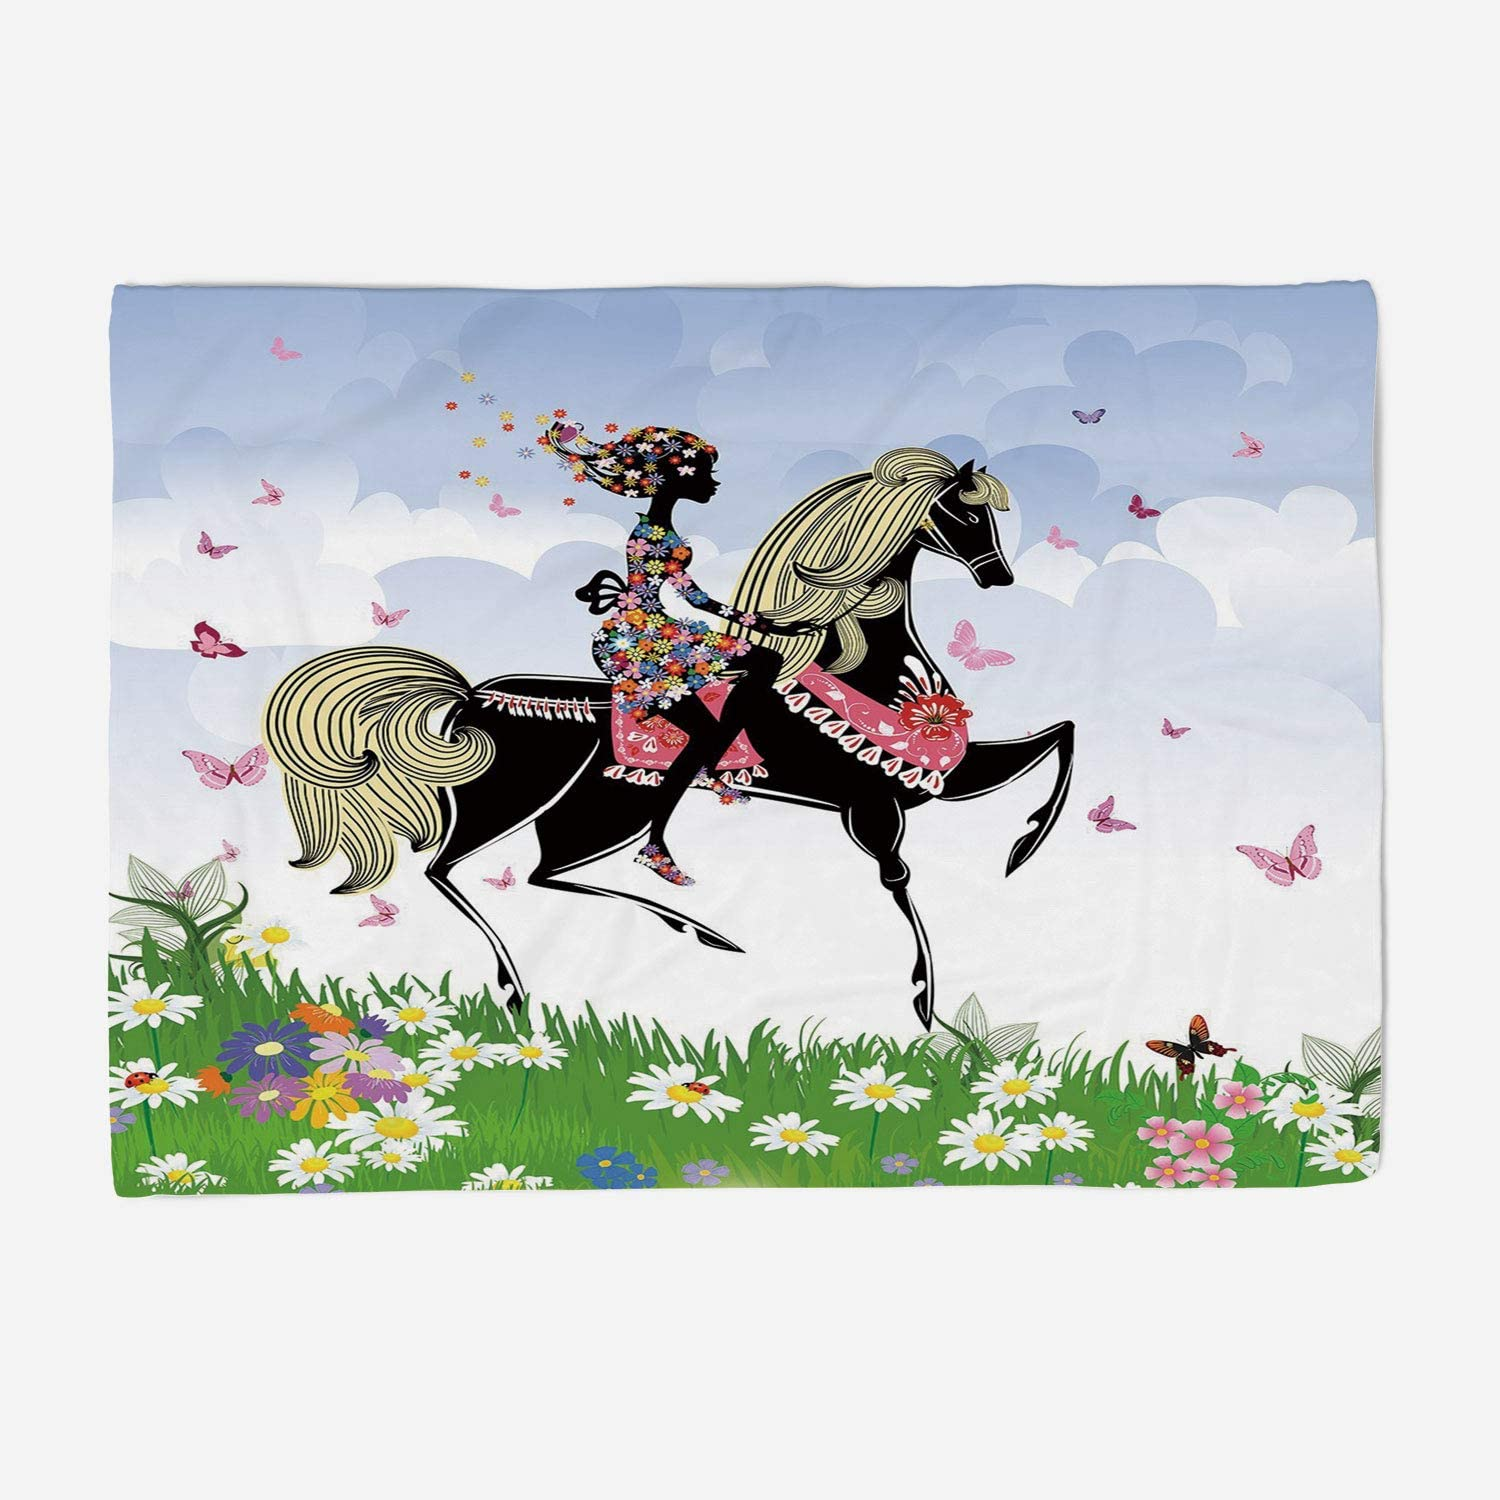 YOLIYANA Throw Blanket Super Soft and Cozy Fleece Blanket Perfect for Couch Sofa or Travelling 59x49 inches Horse Decor,Floral Girl Riding Pony in Fantasy Spring Field Butterflies Daisies Girls